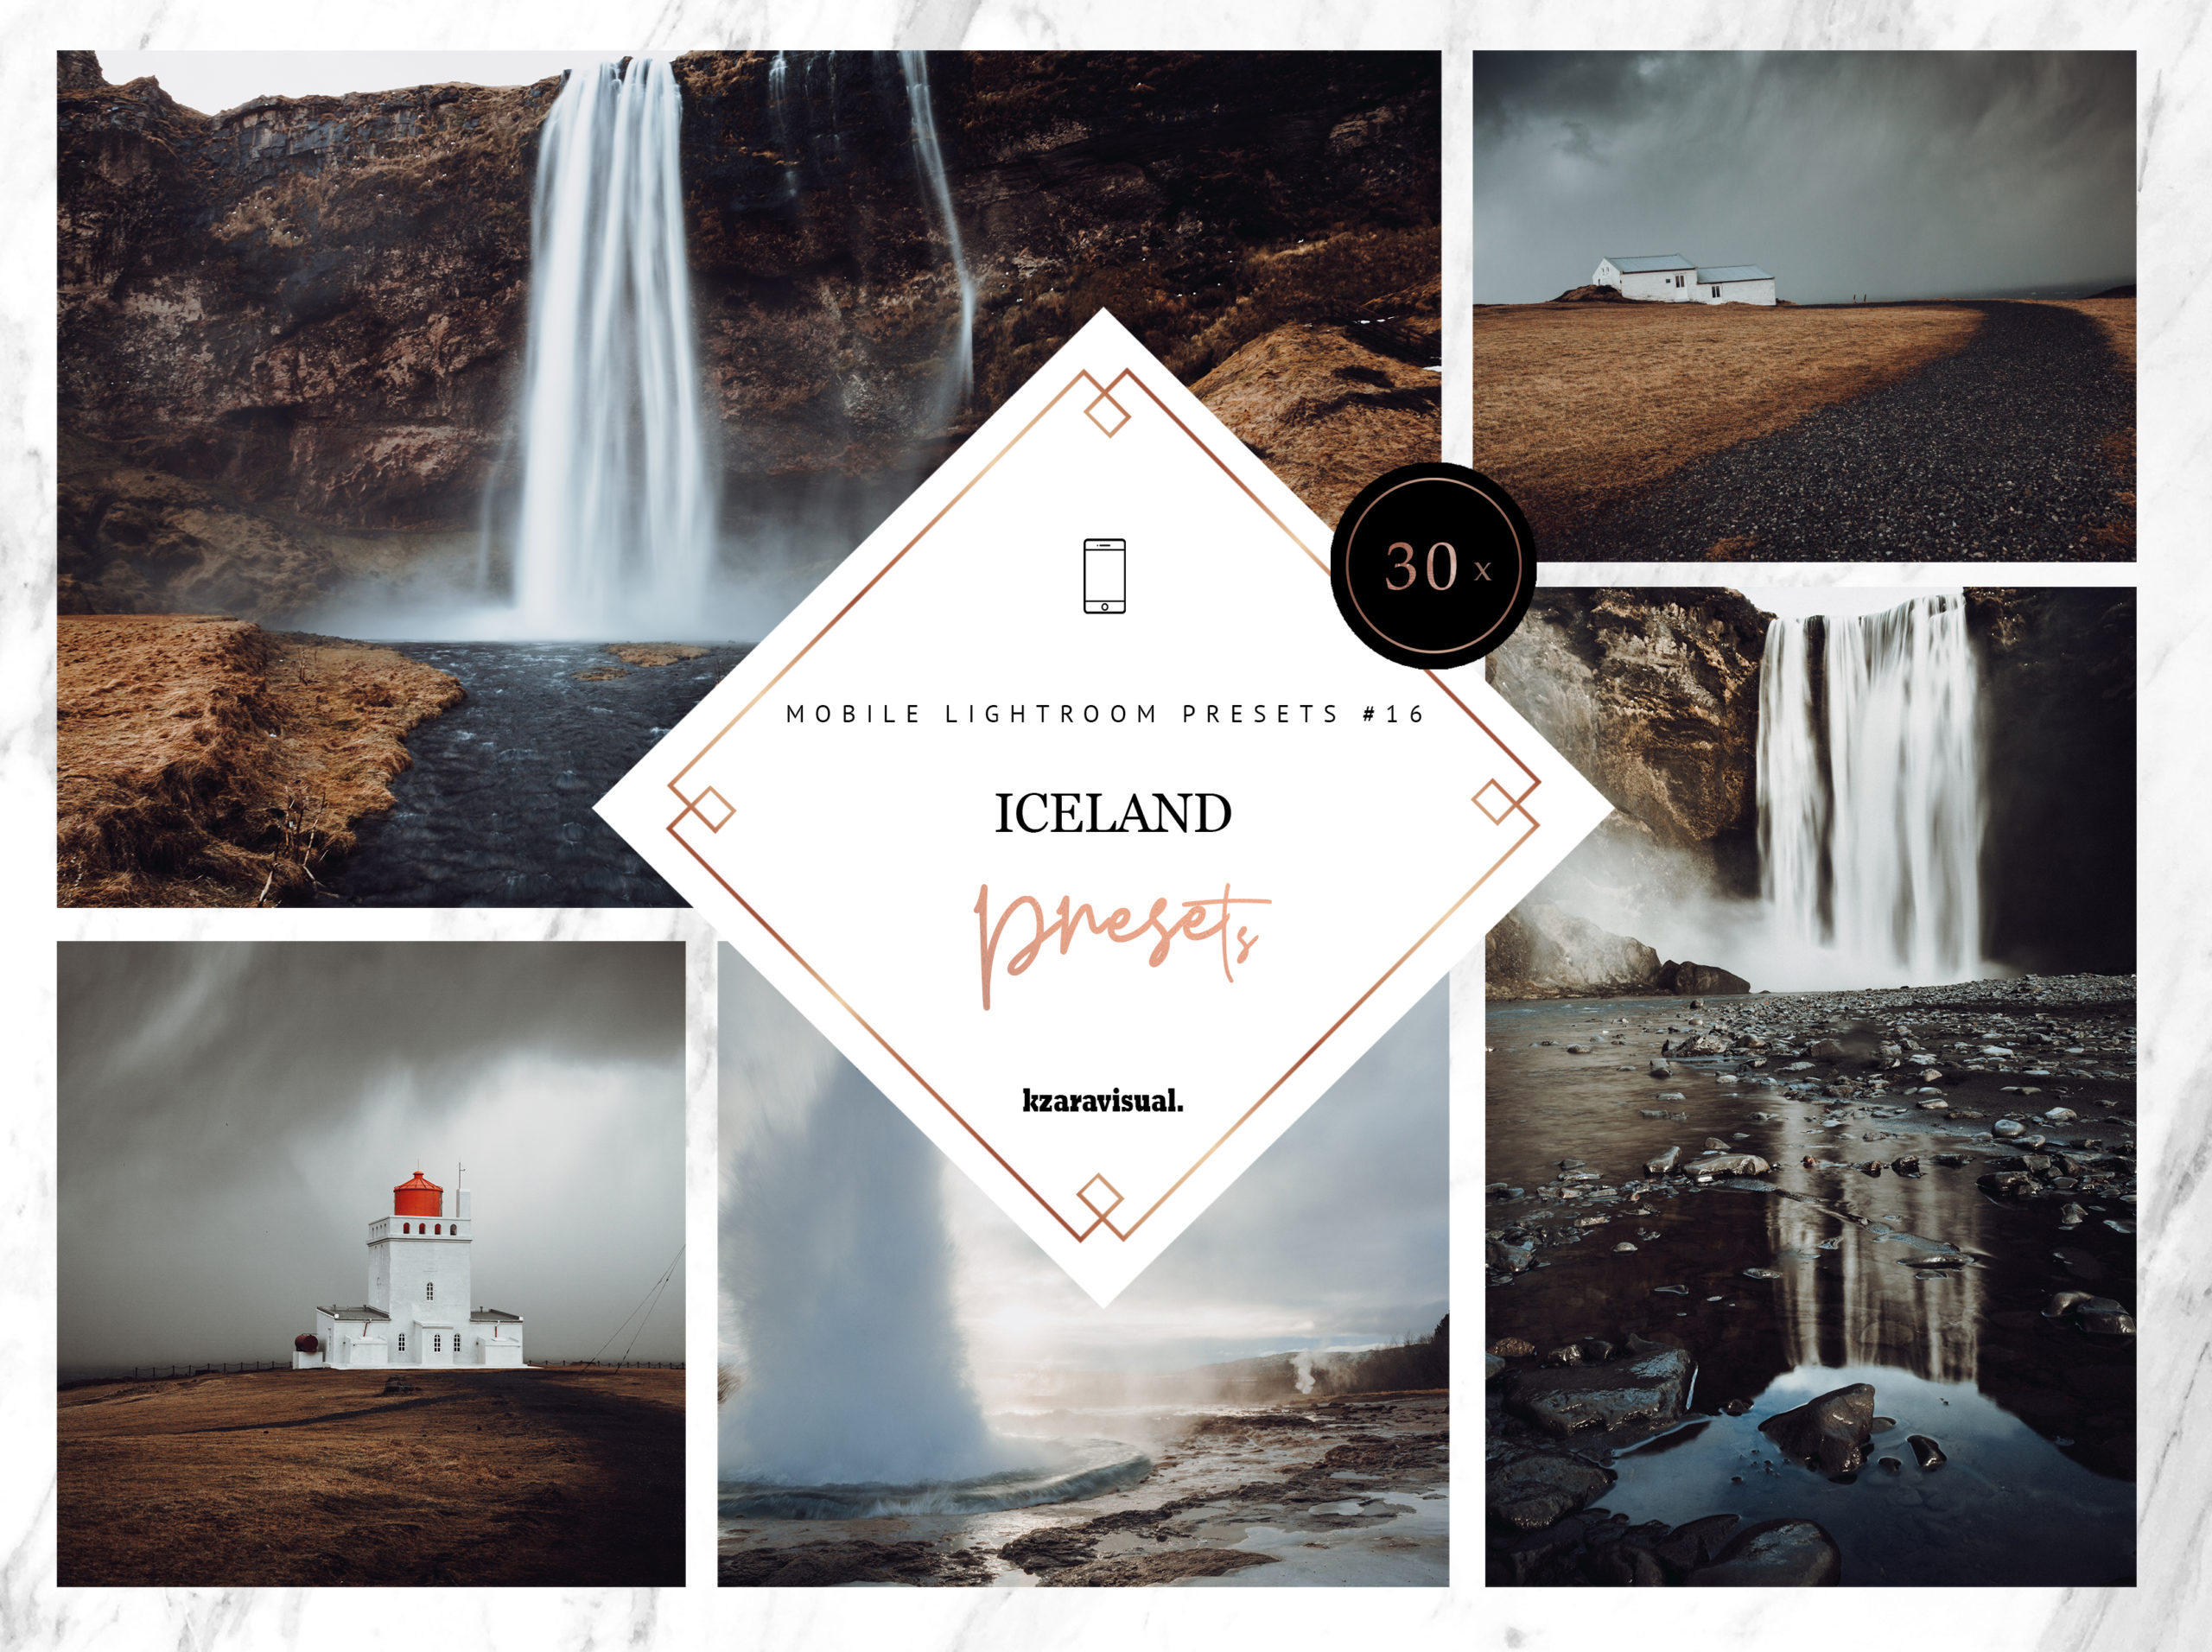 30x Iceland Mobile Lightroom Presets | Perfect for adding moody, dramatic tones